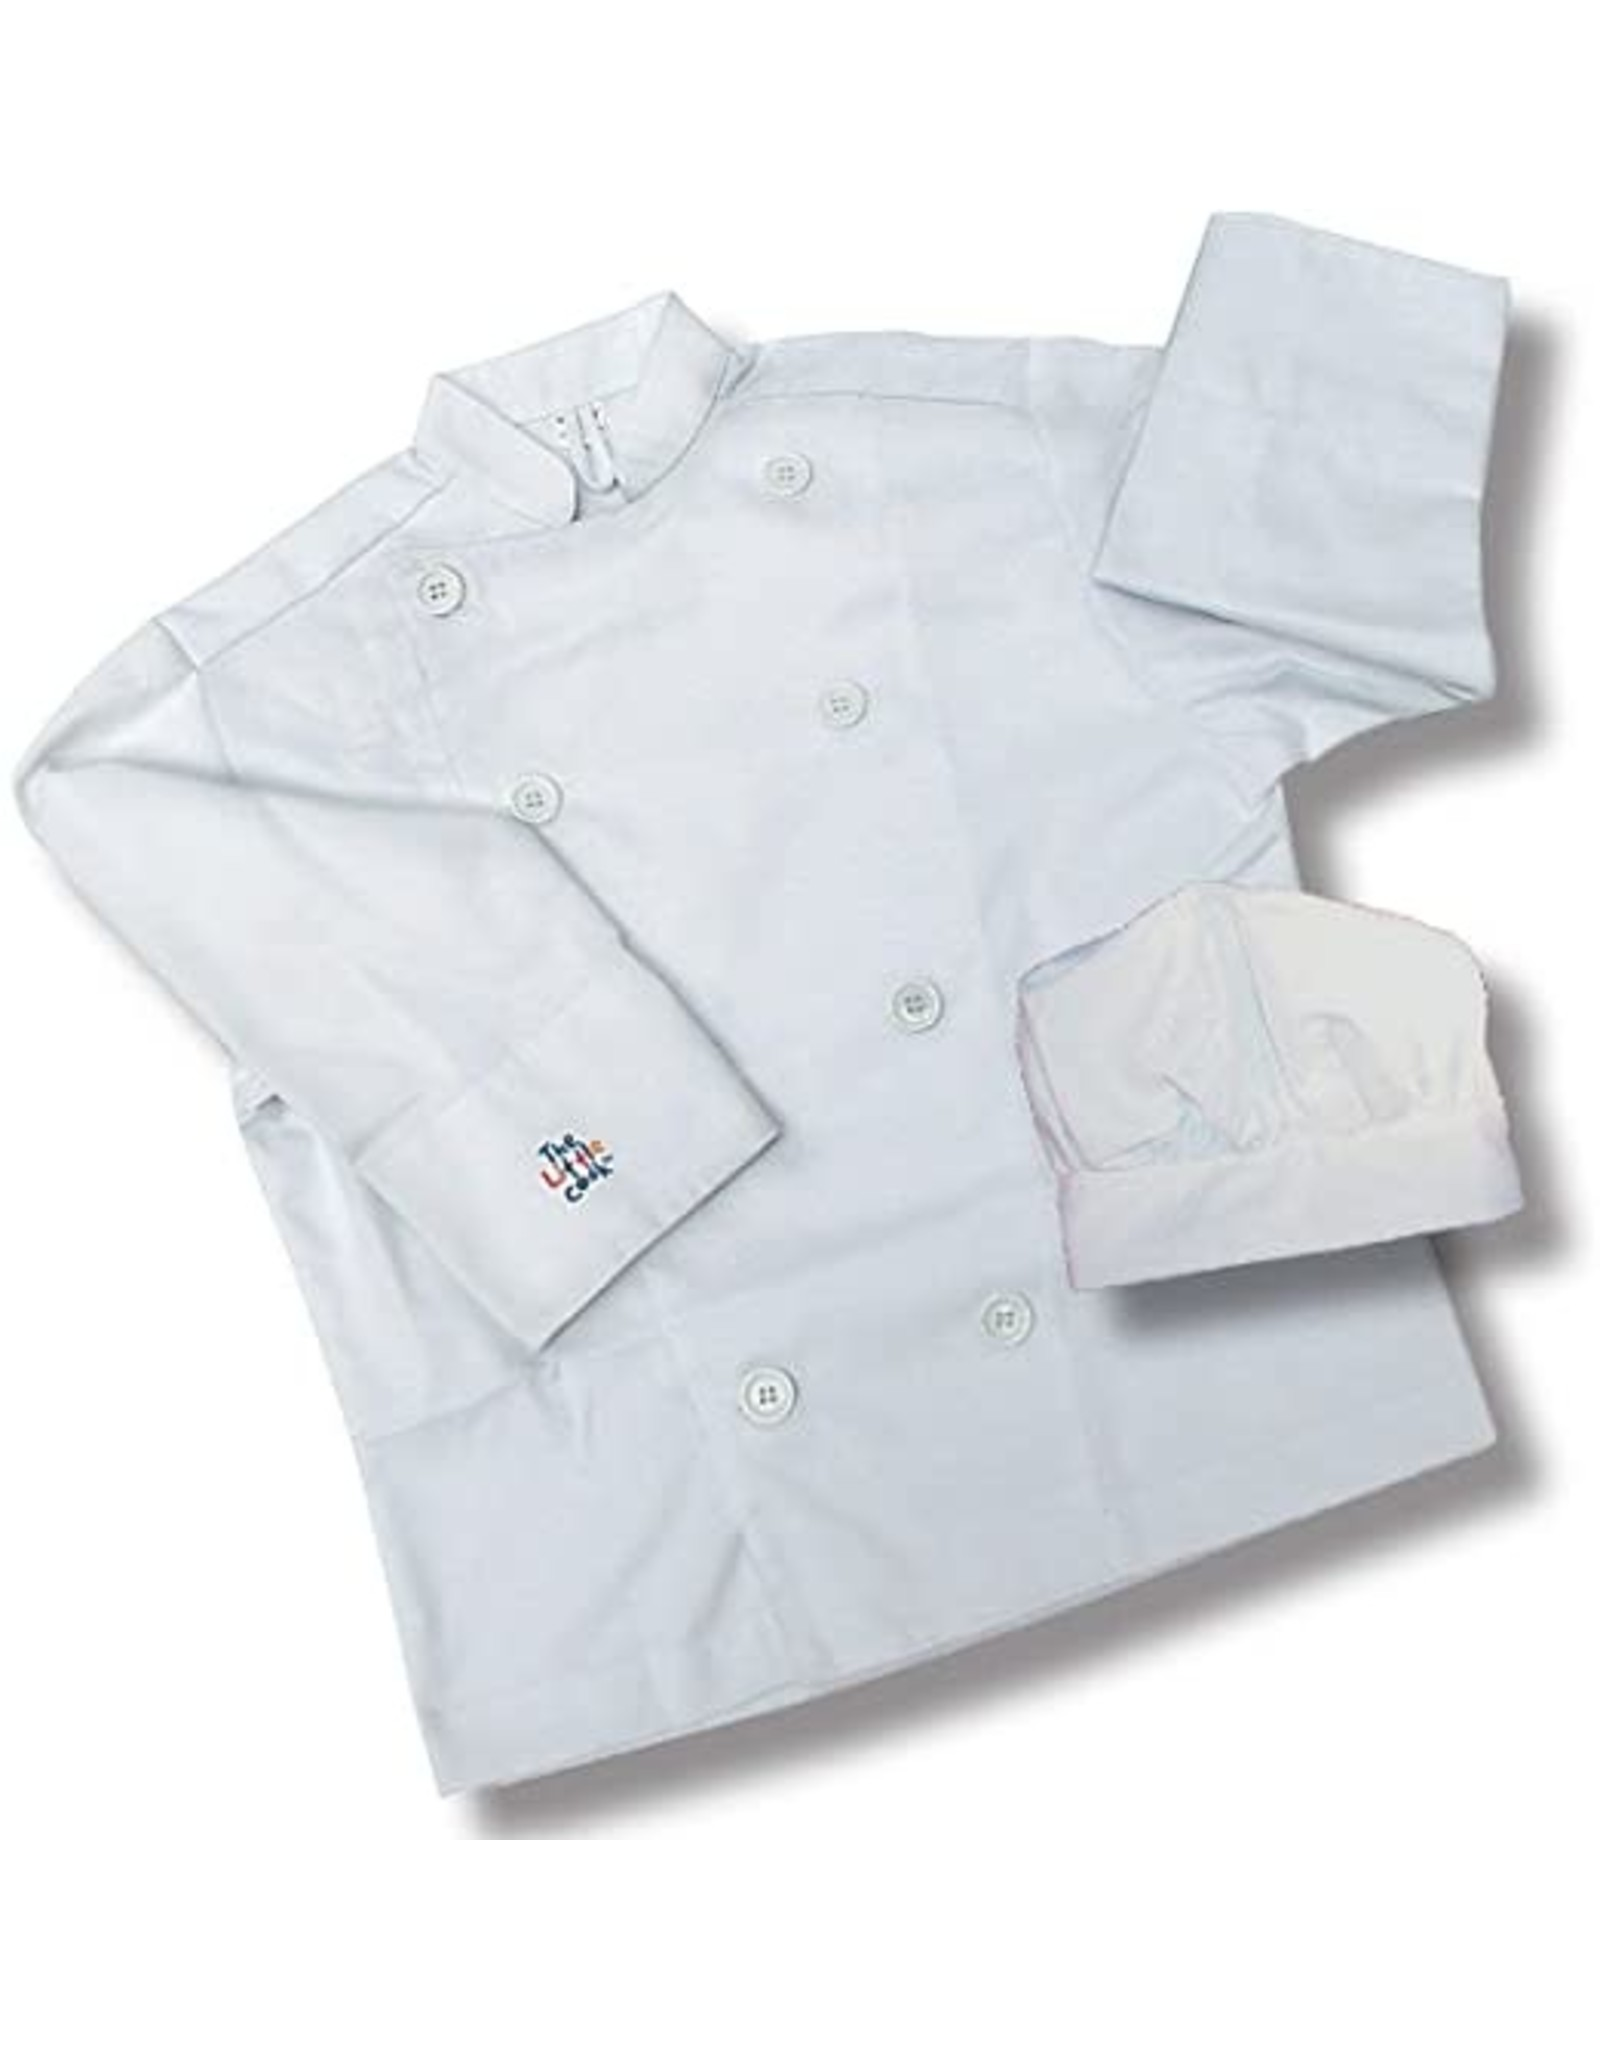 SAS Child's Play Chef Jacket and Hat Set